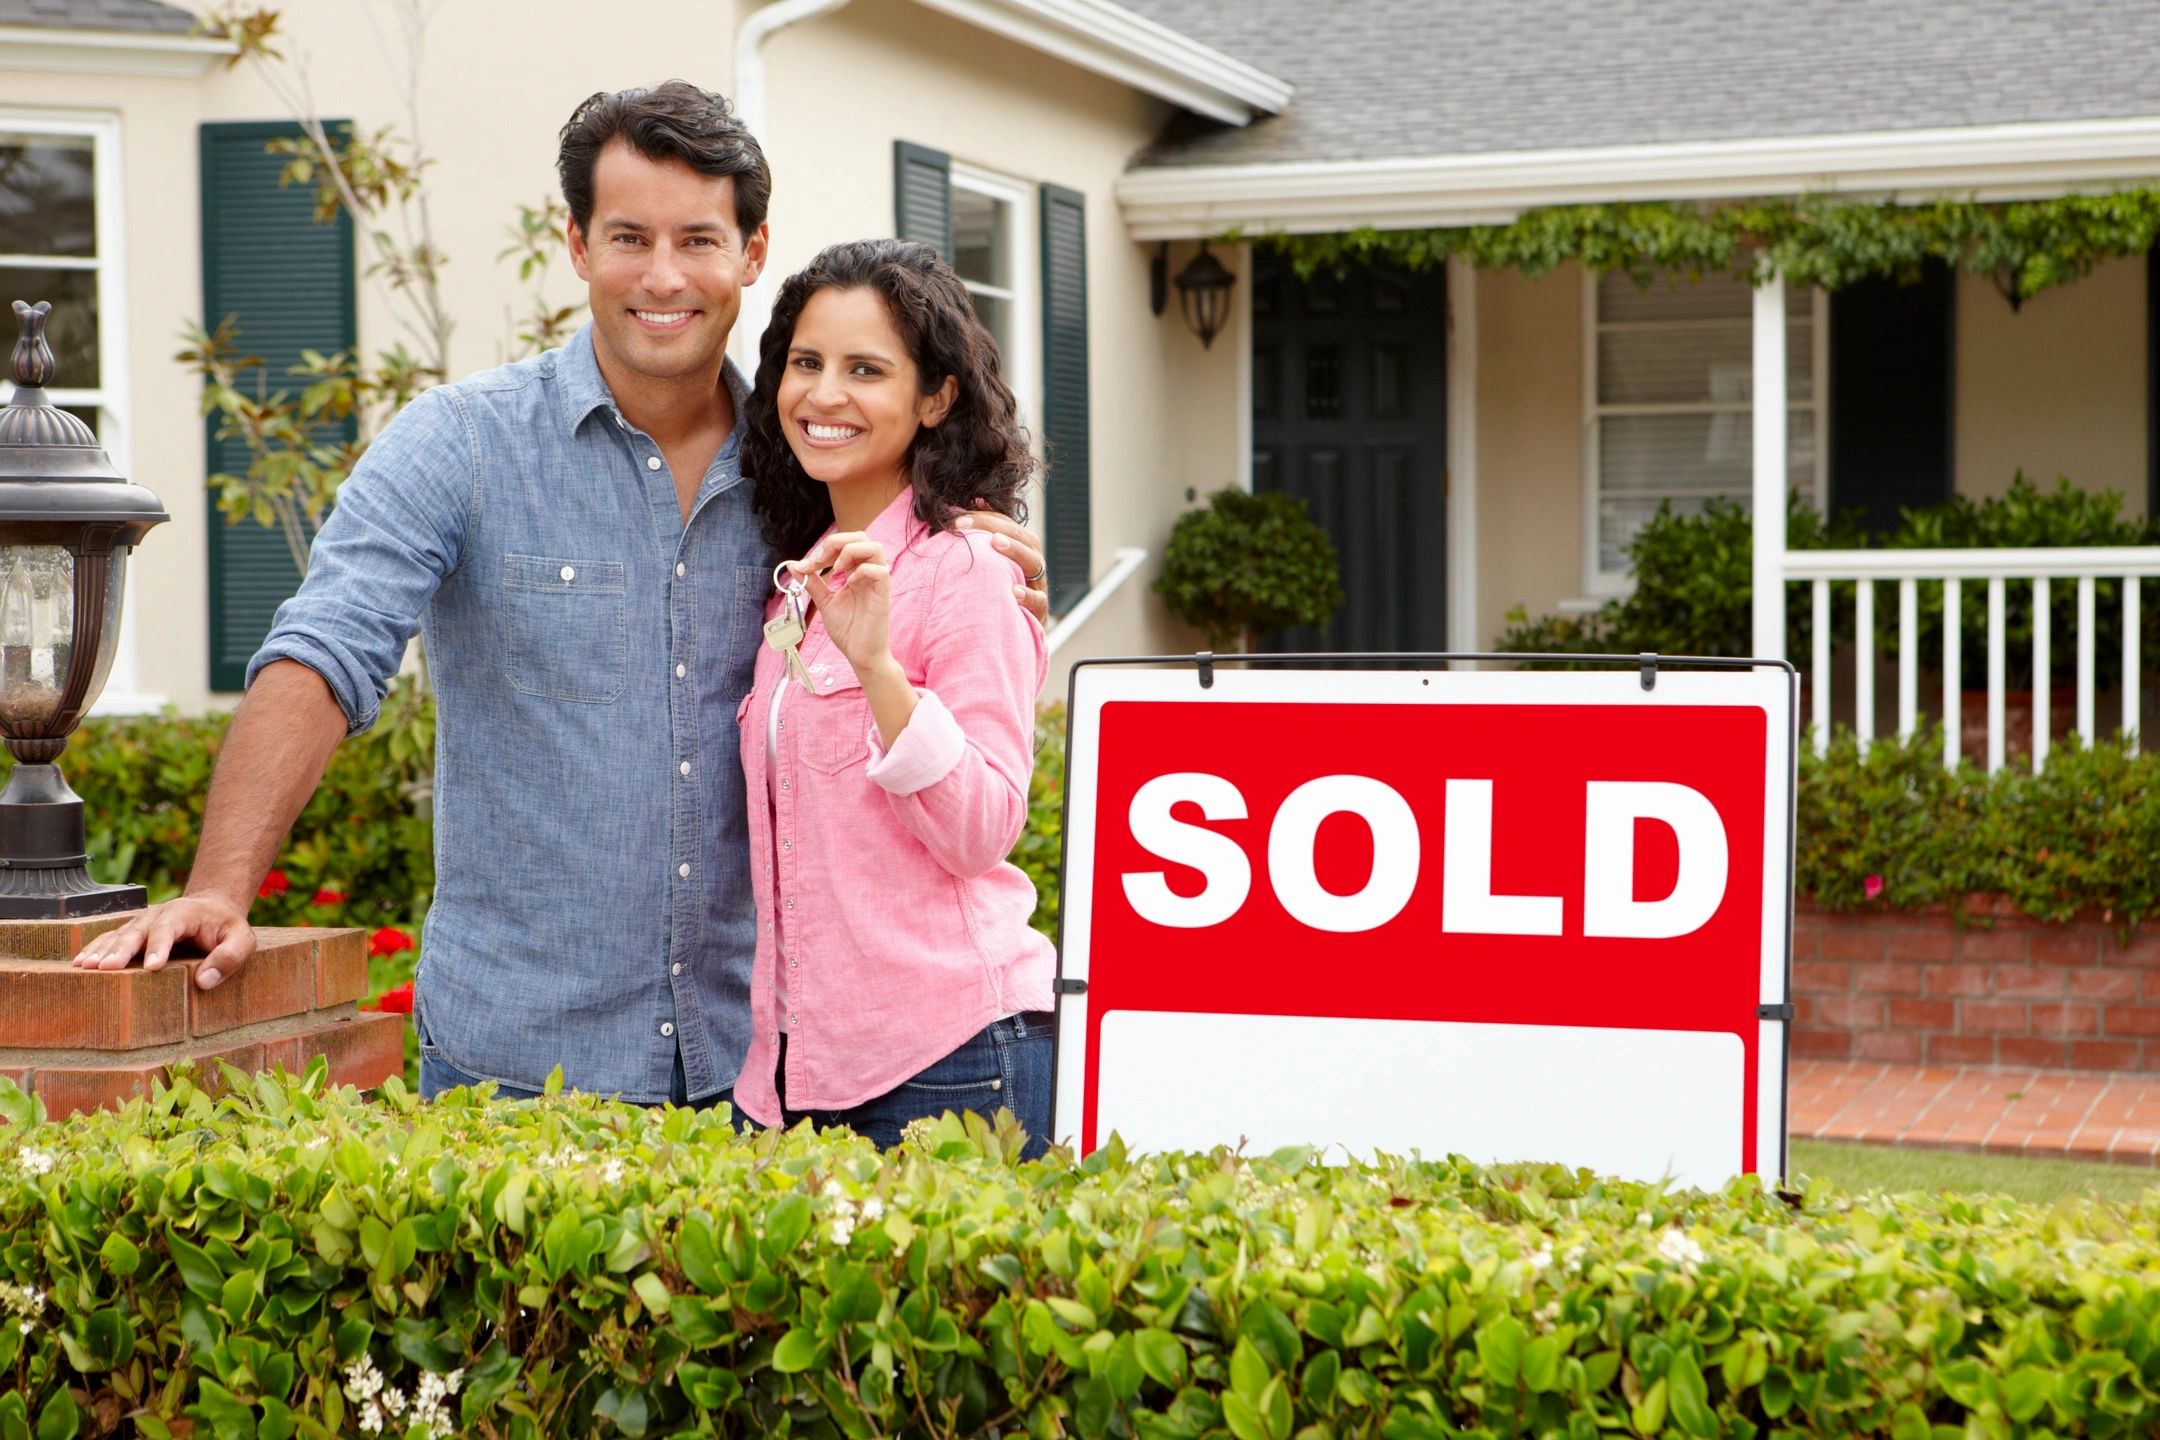 5 signs will help you determine if you are ready to buy your dream home